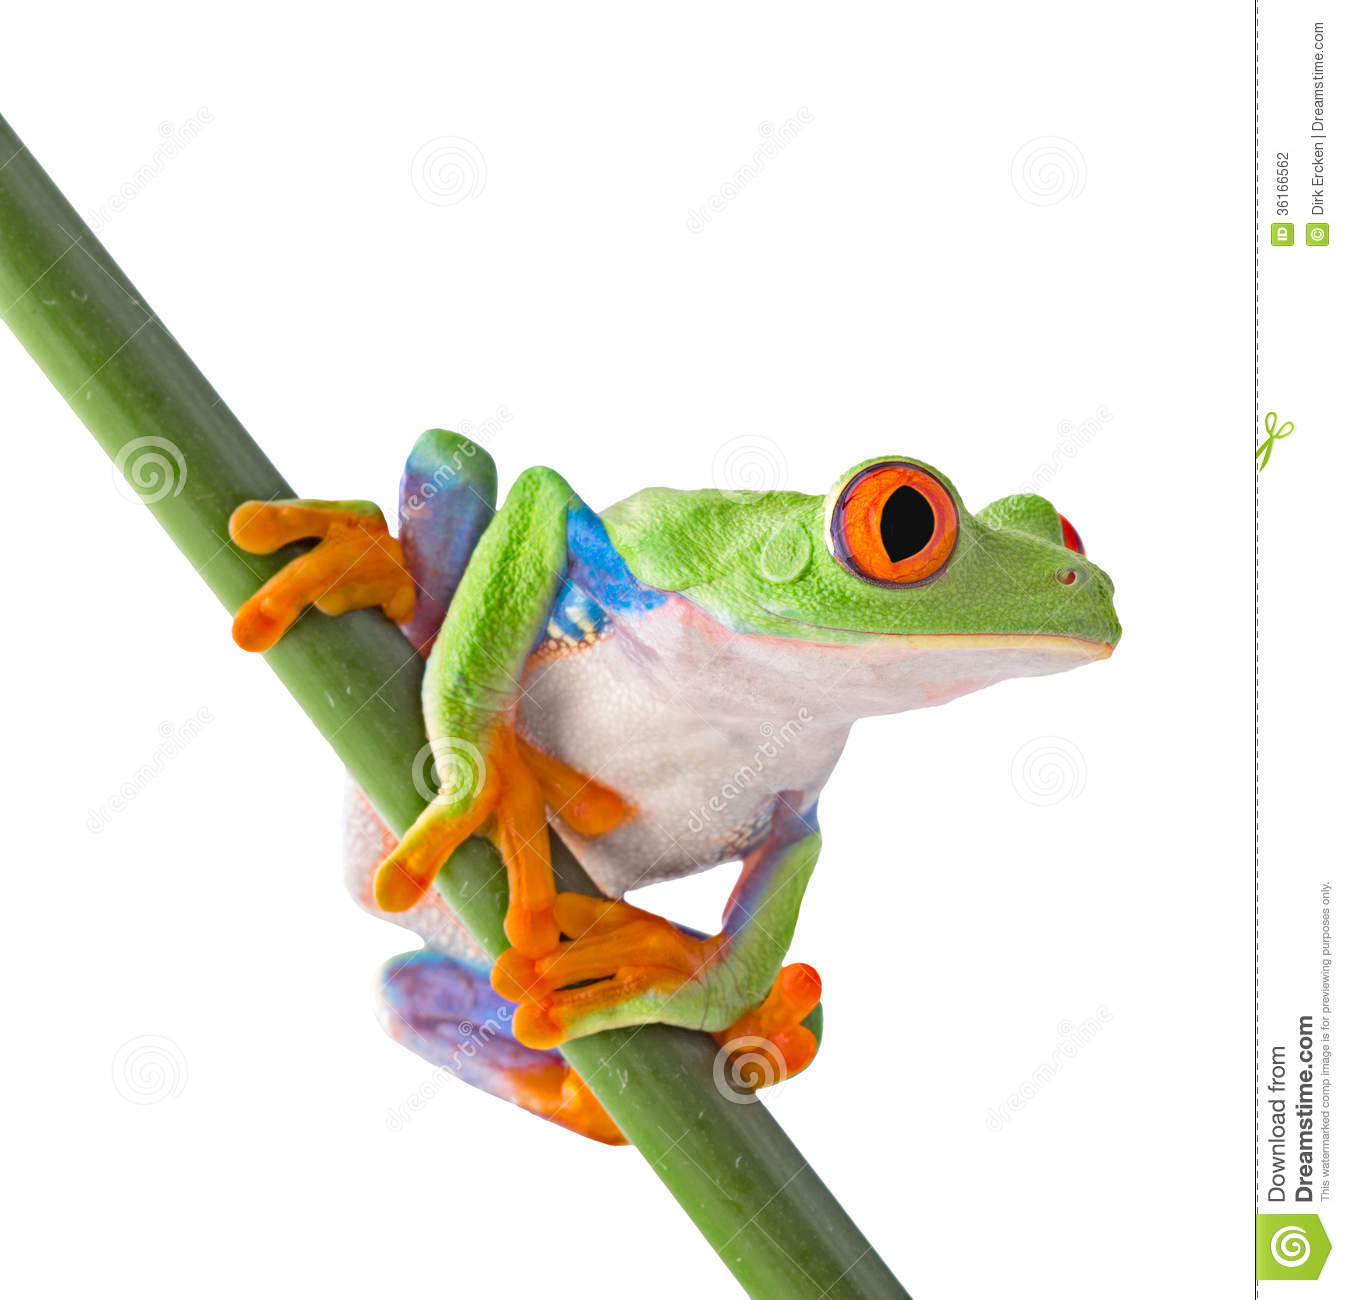 Amphibian Clipart | Wallpapers Gallery